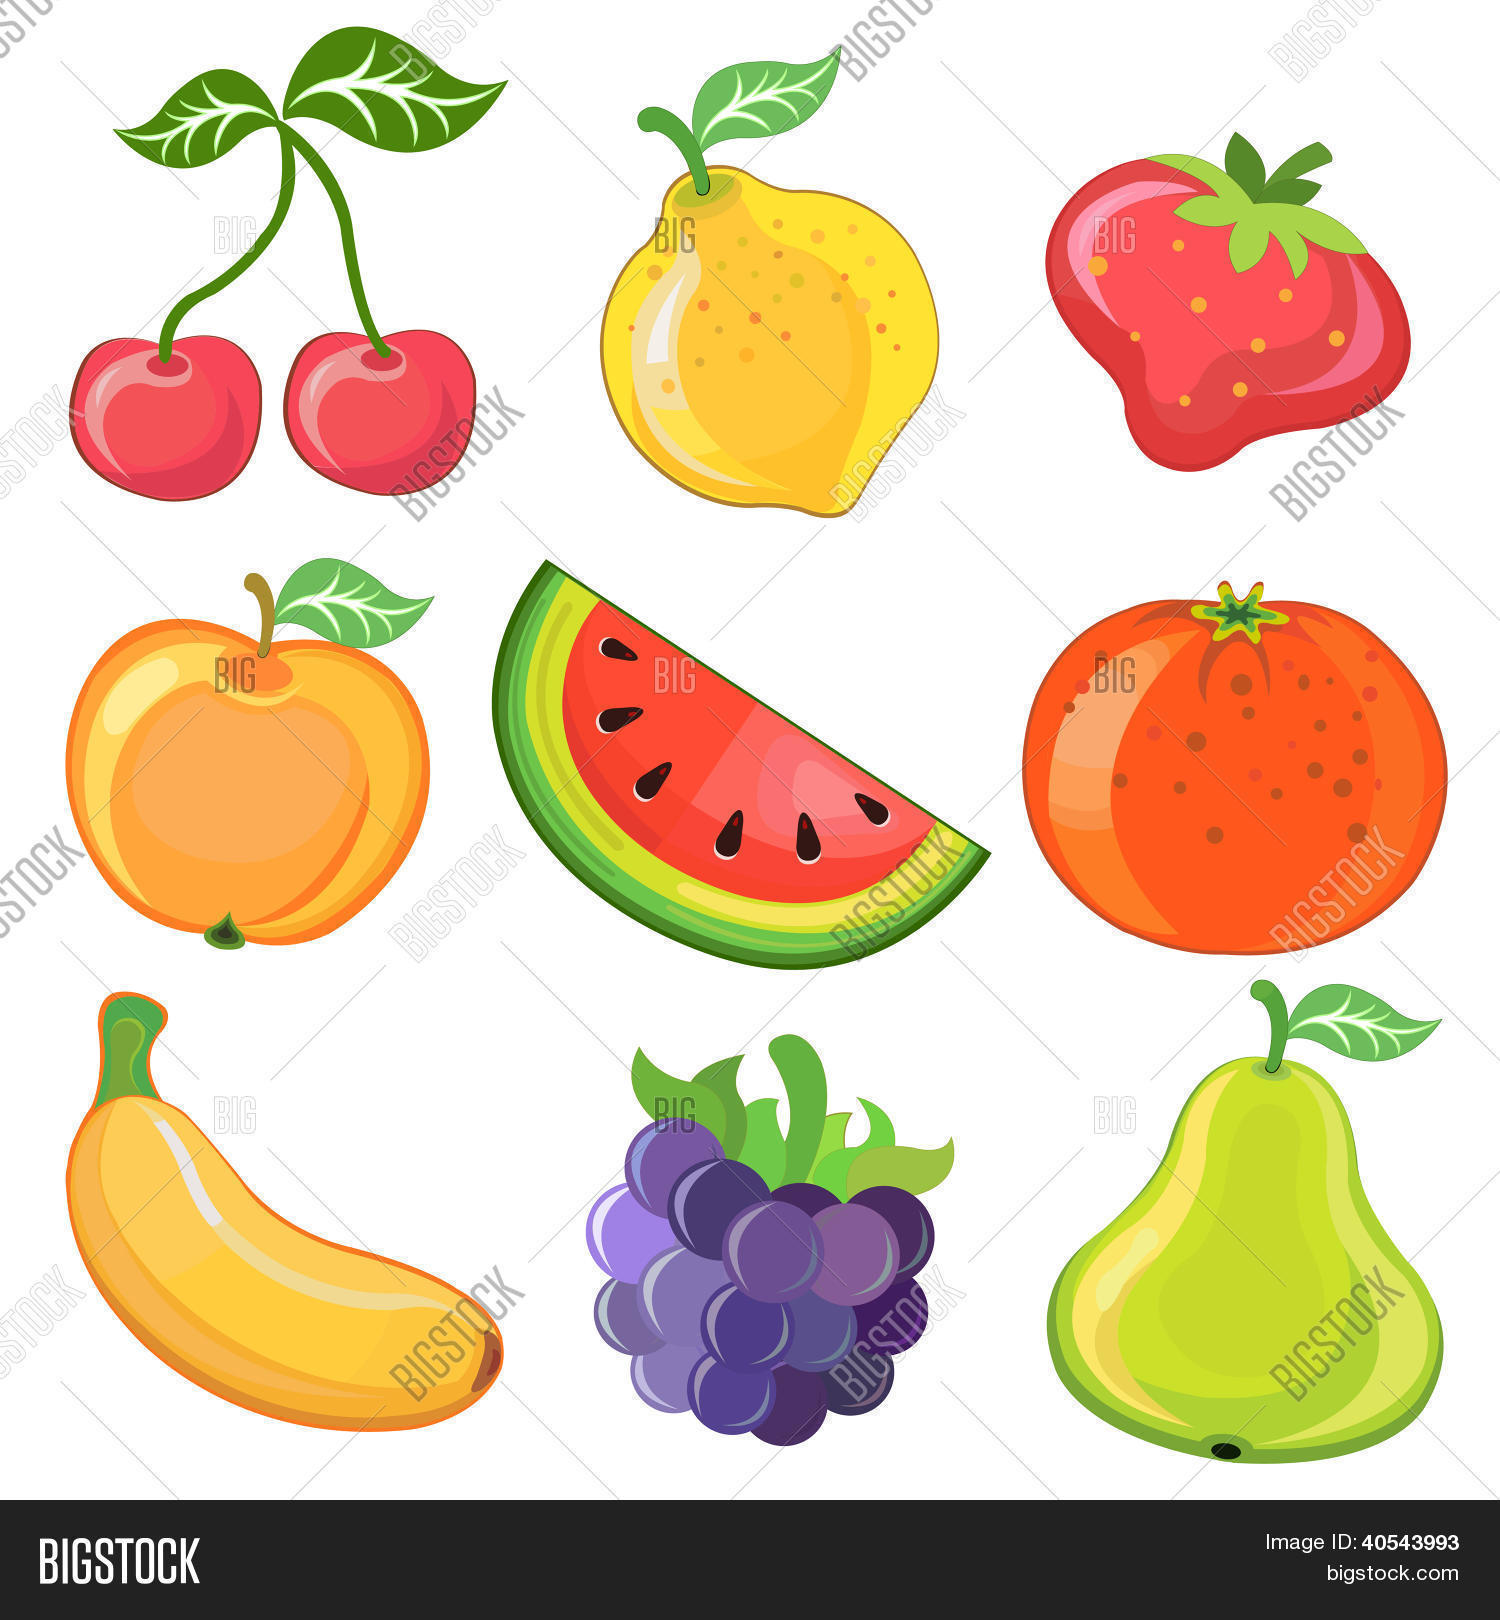 Cute Baby Collection Wallpaper Frutas Animadas Www Imgkid Com The Image Kid Has It